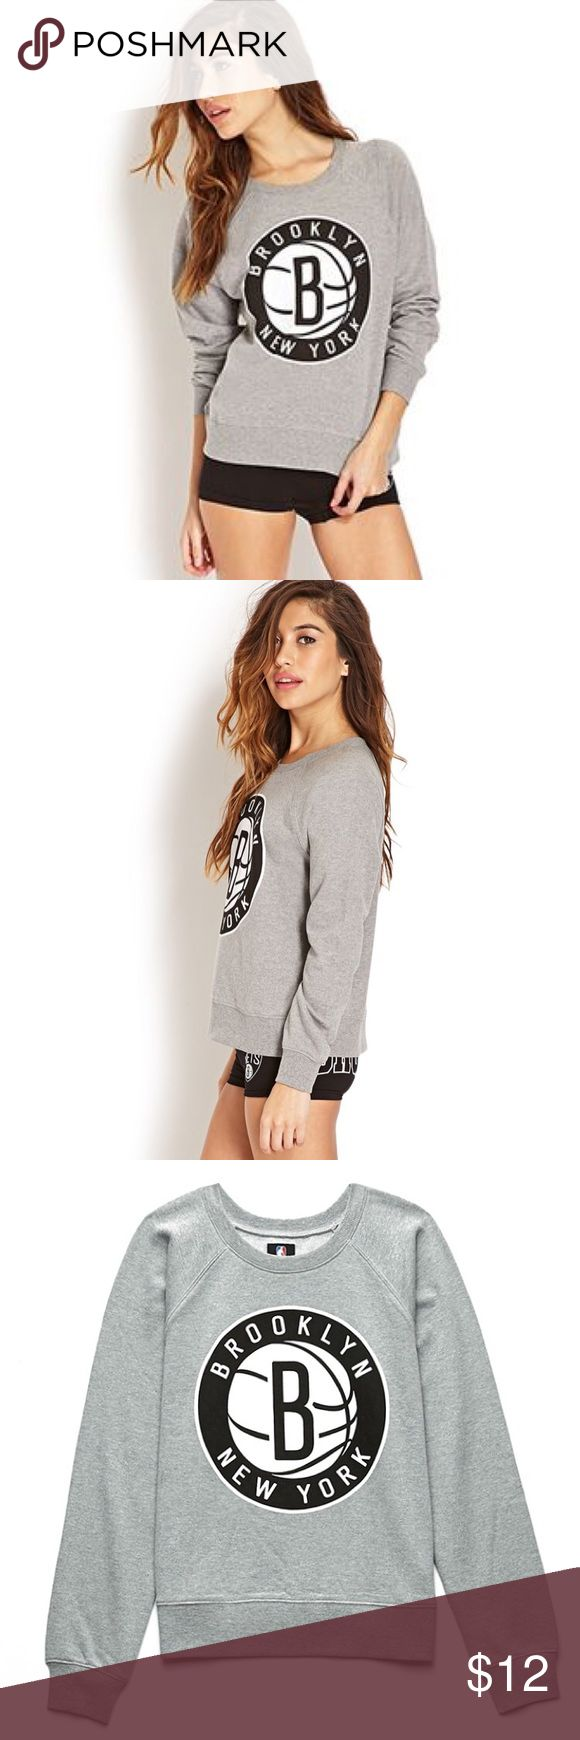 Forever21 NBA Collection Brooklyn Nets Sweatshirt Women's Gray Brooklyn Nets Sweatshirt - Size Large Forever 21 Tops Sweatshirts & Hoodies